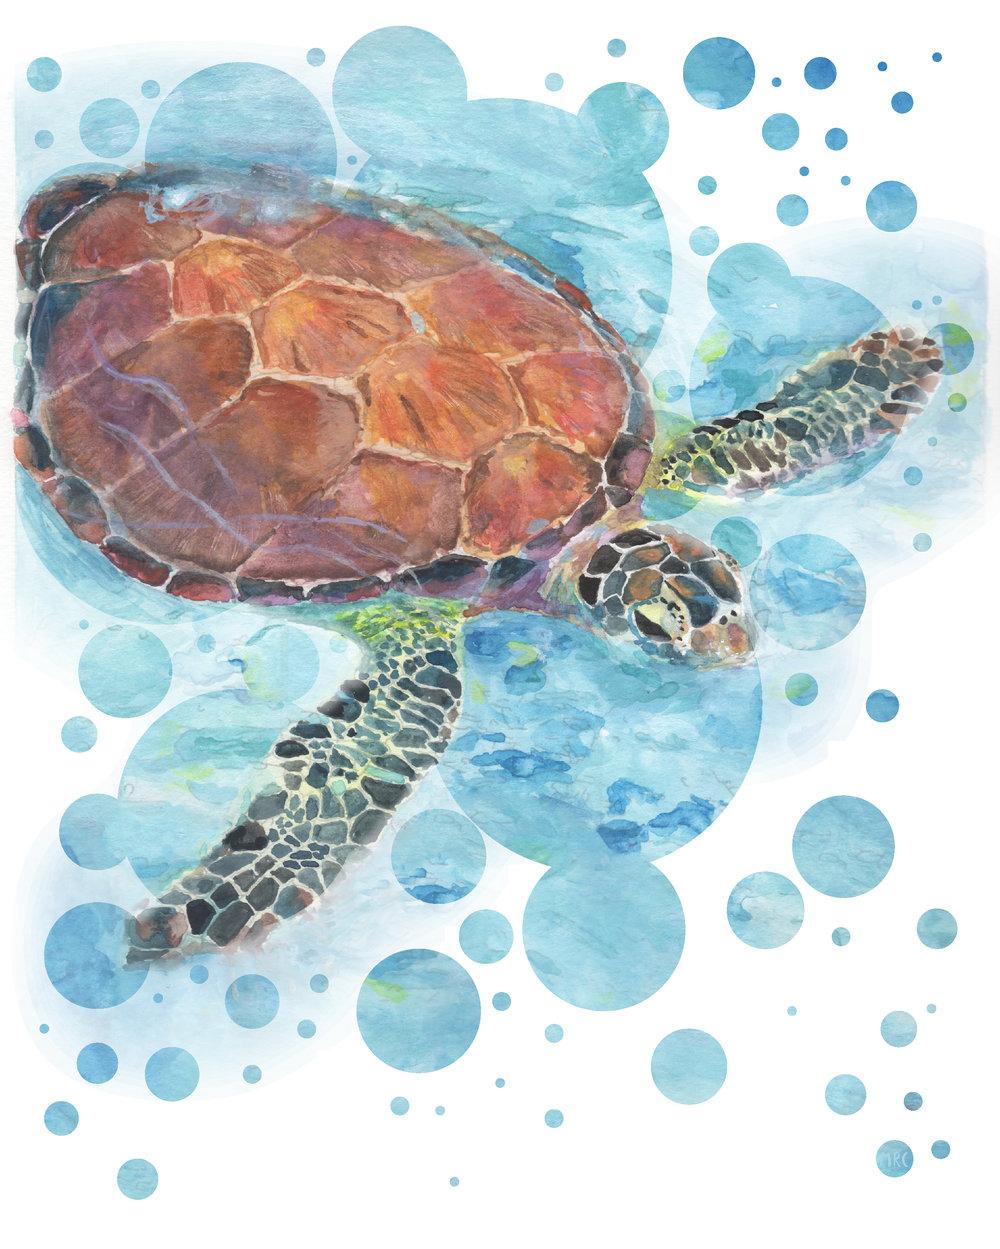 Digital Sea Turtle | 2017